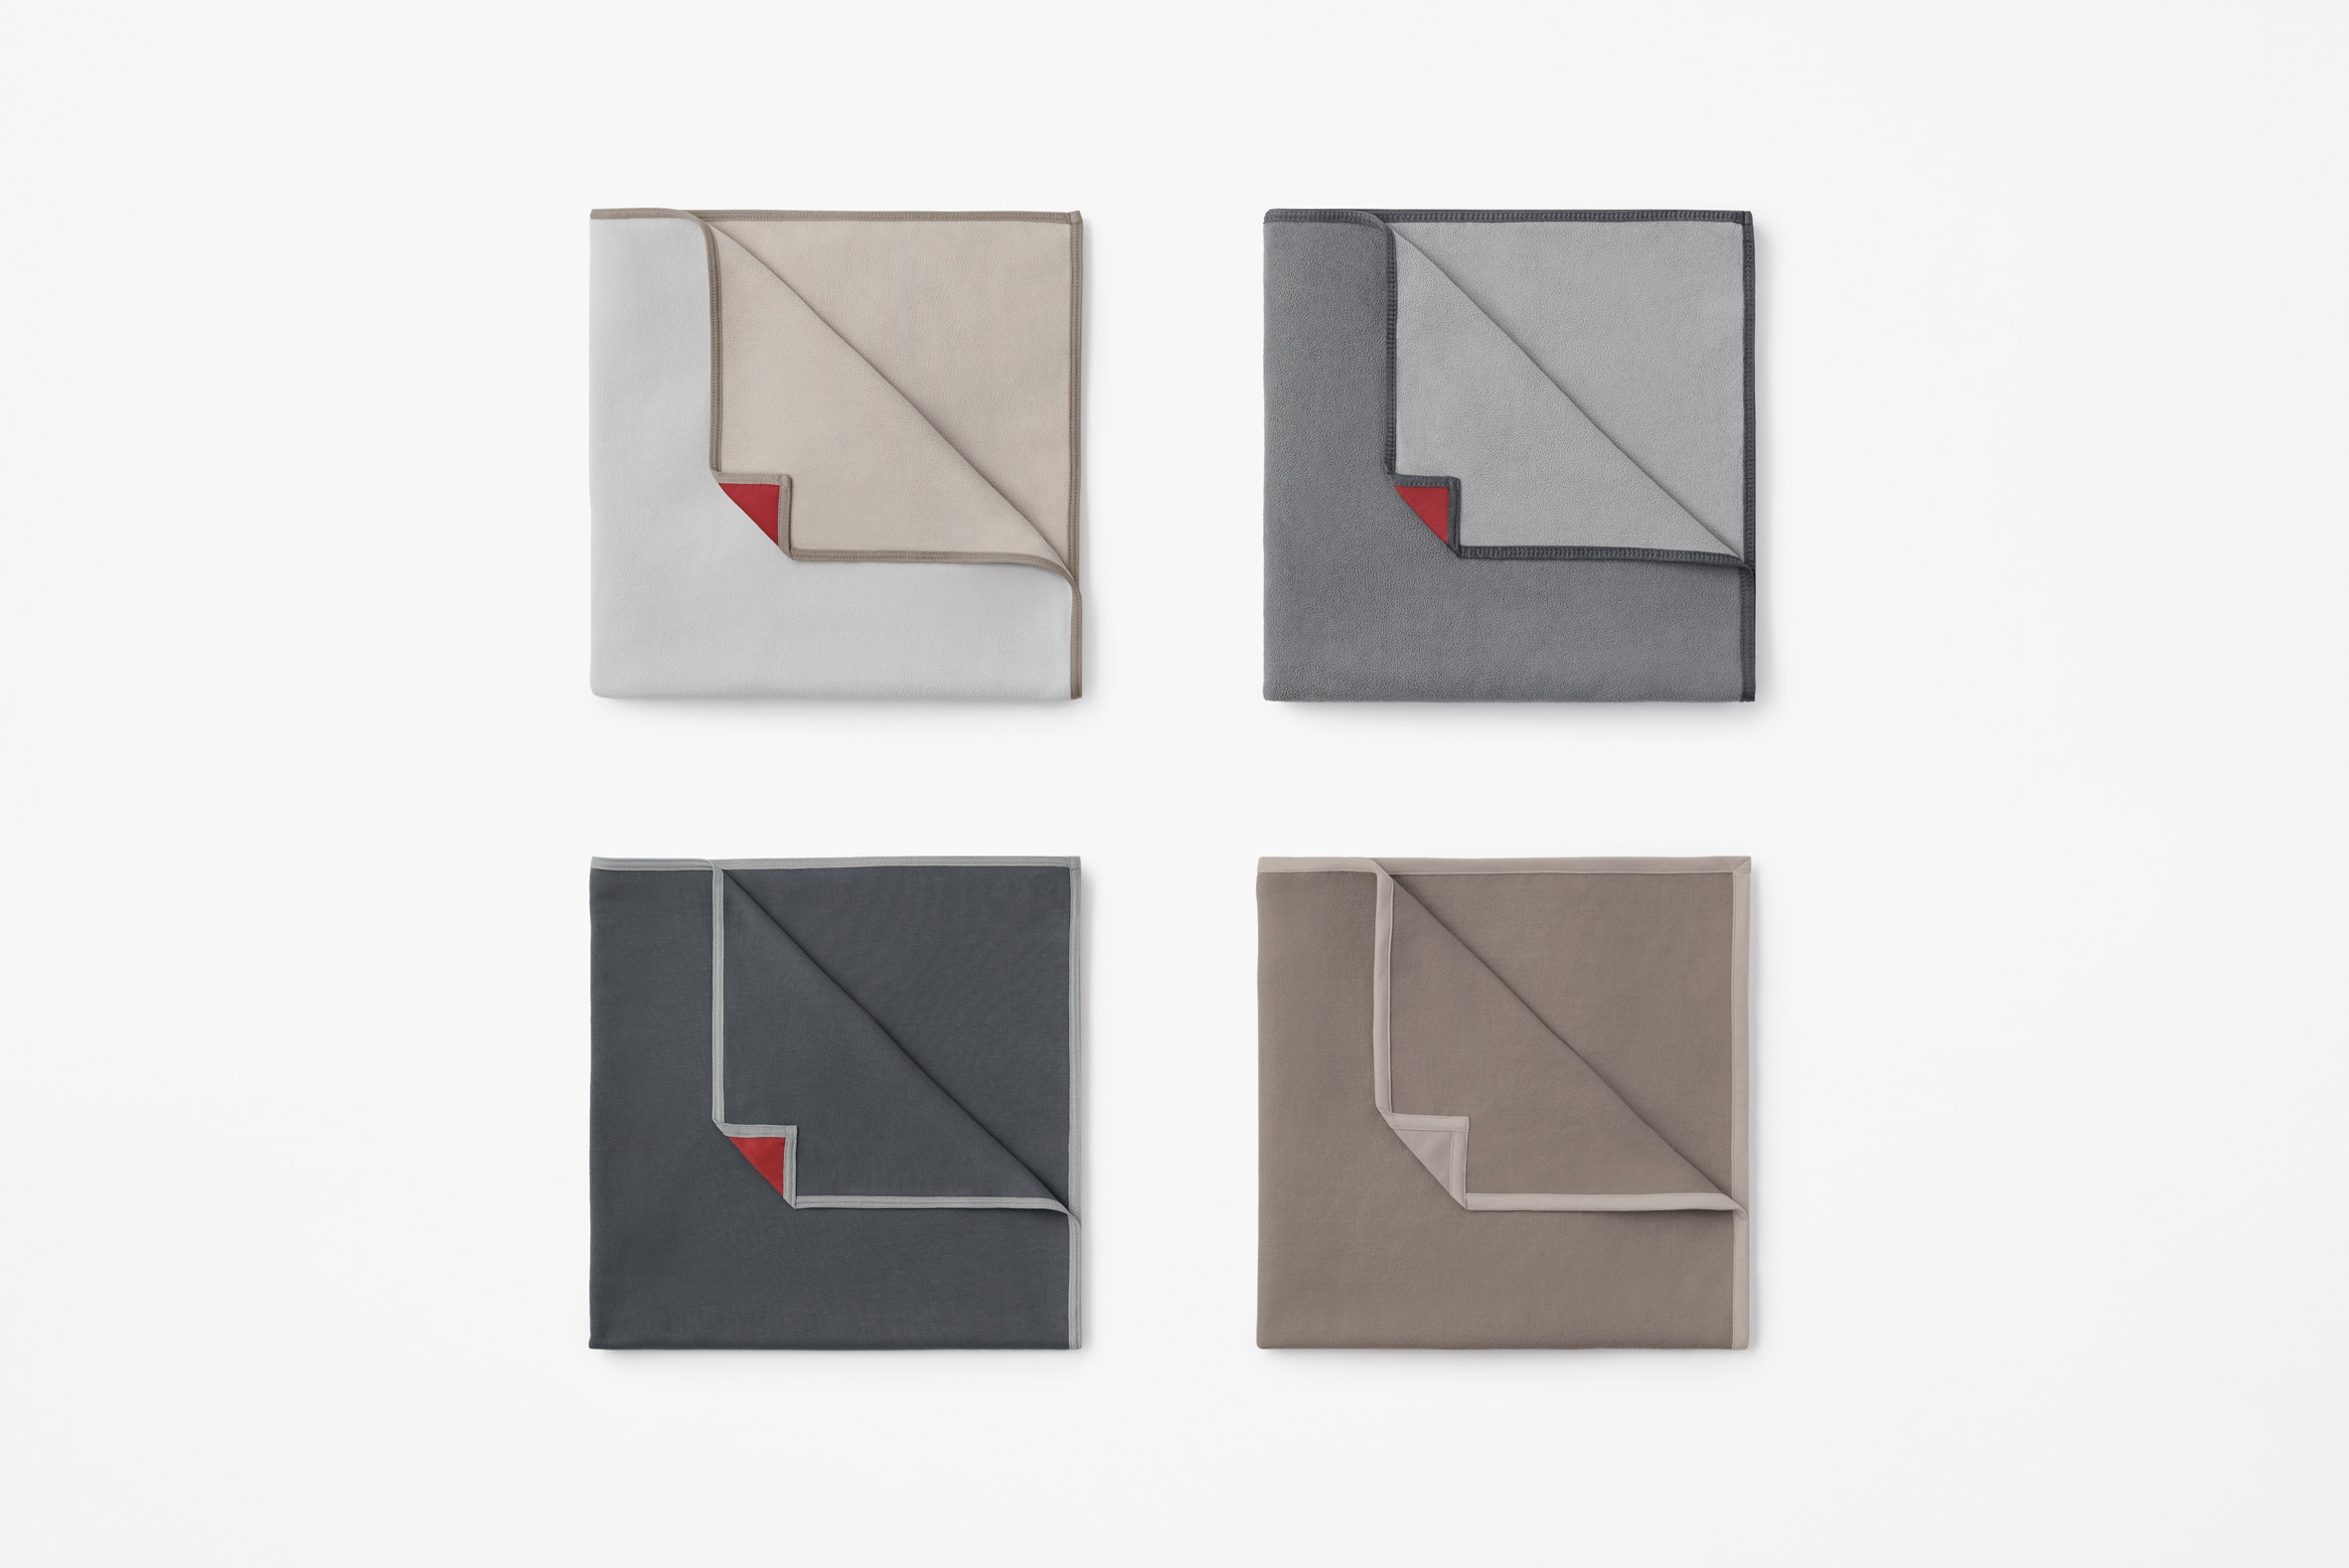 Blankets by Nendo for Japan Airlines